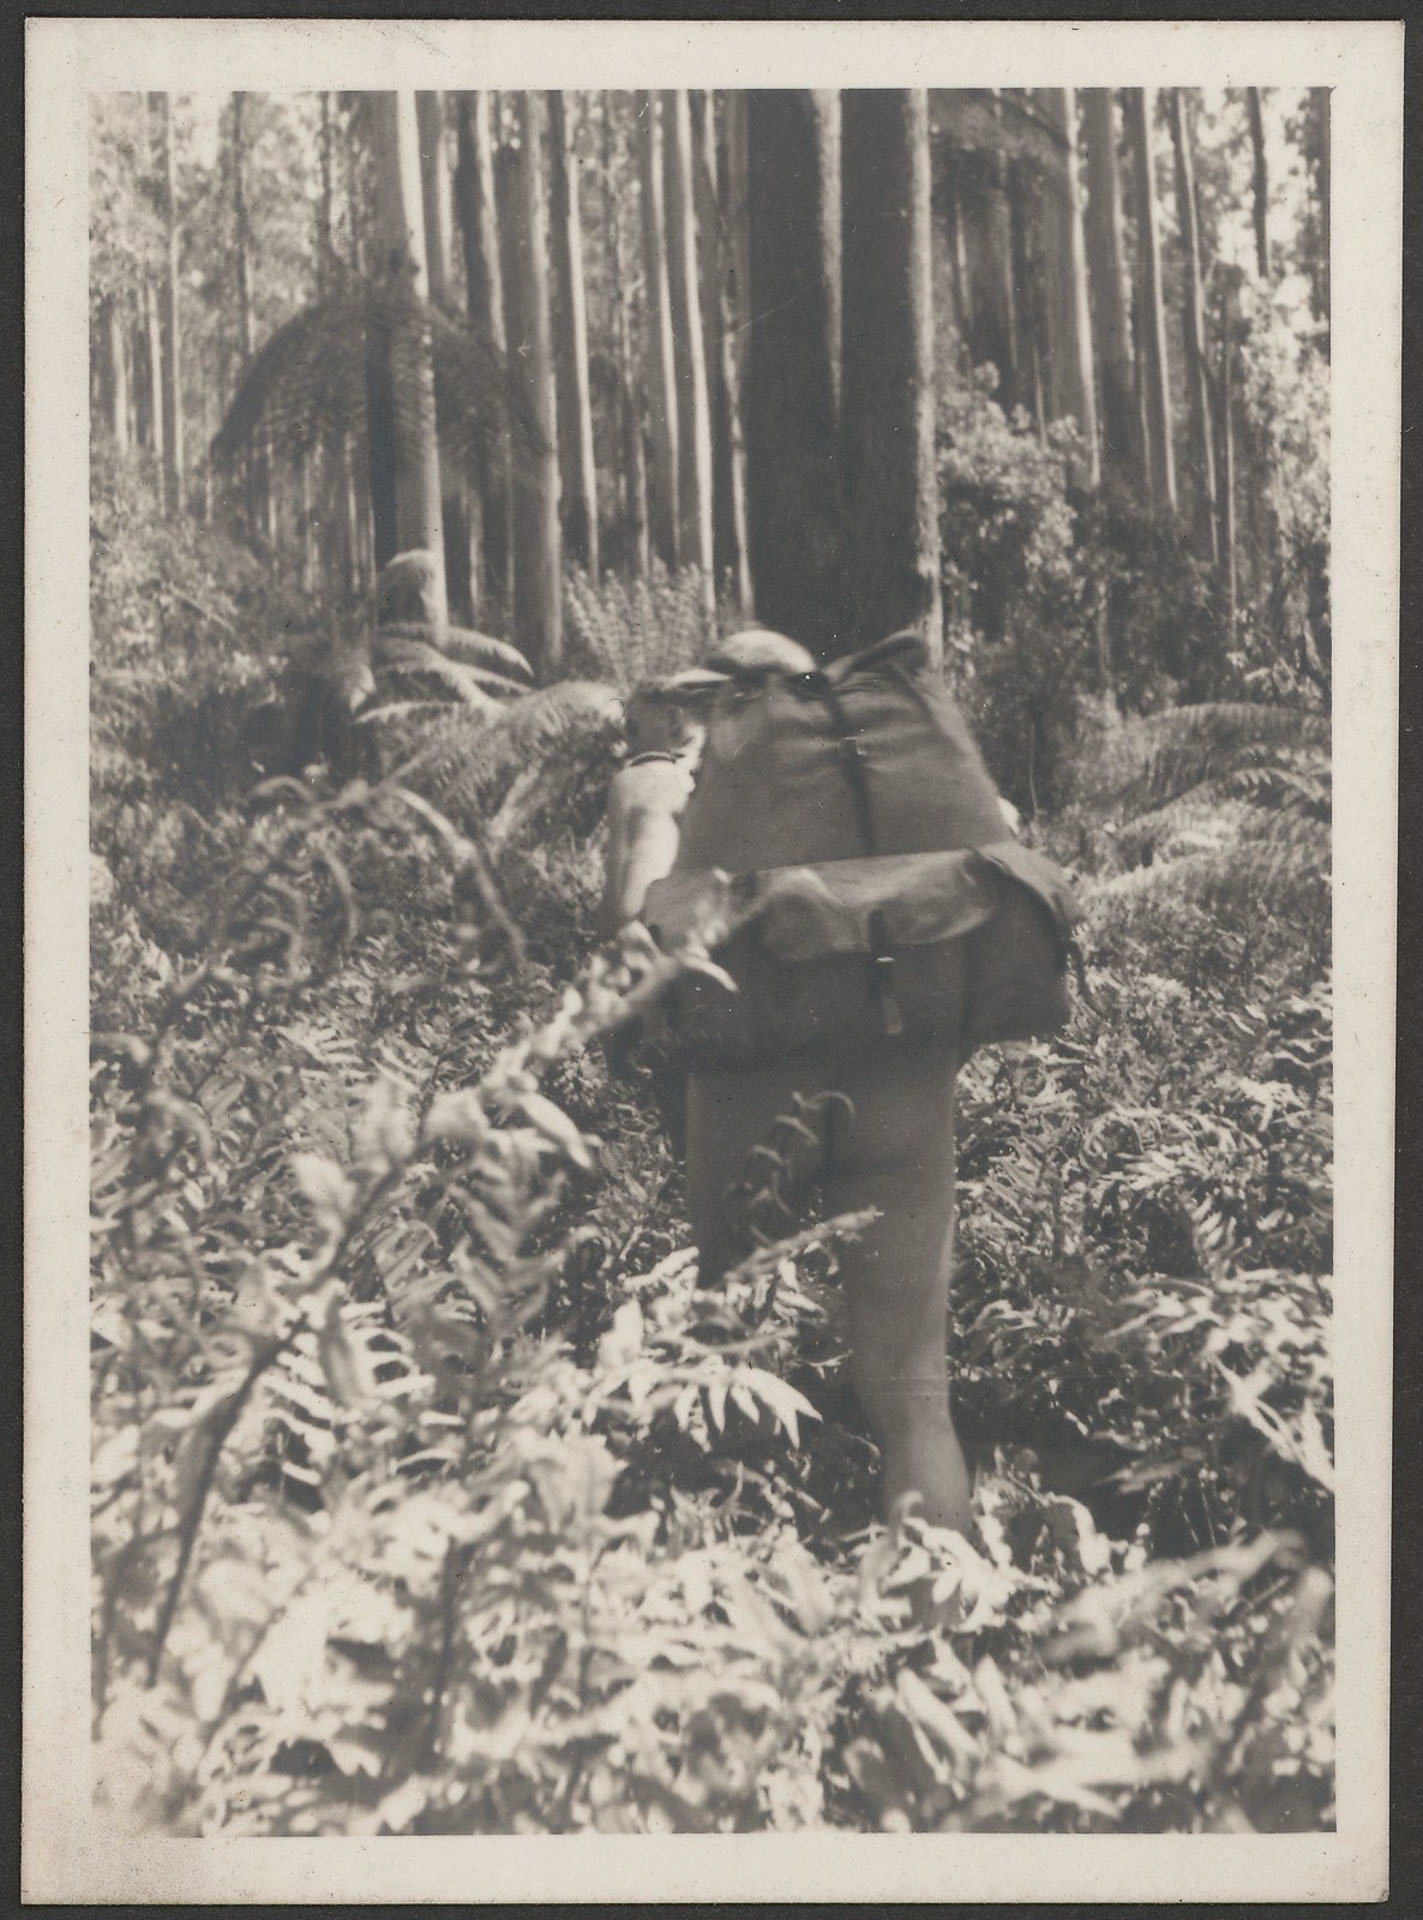 Naked fern hiker 1937 CP FREE SLV, the Intriguing History (and Exciting Future) of Hiking Clothing